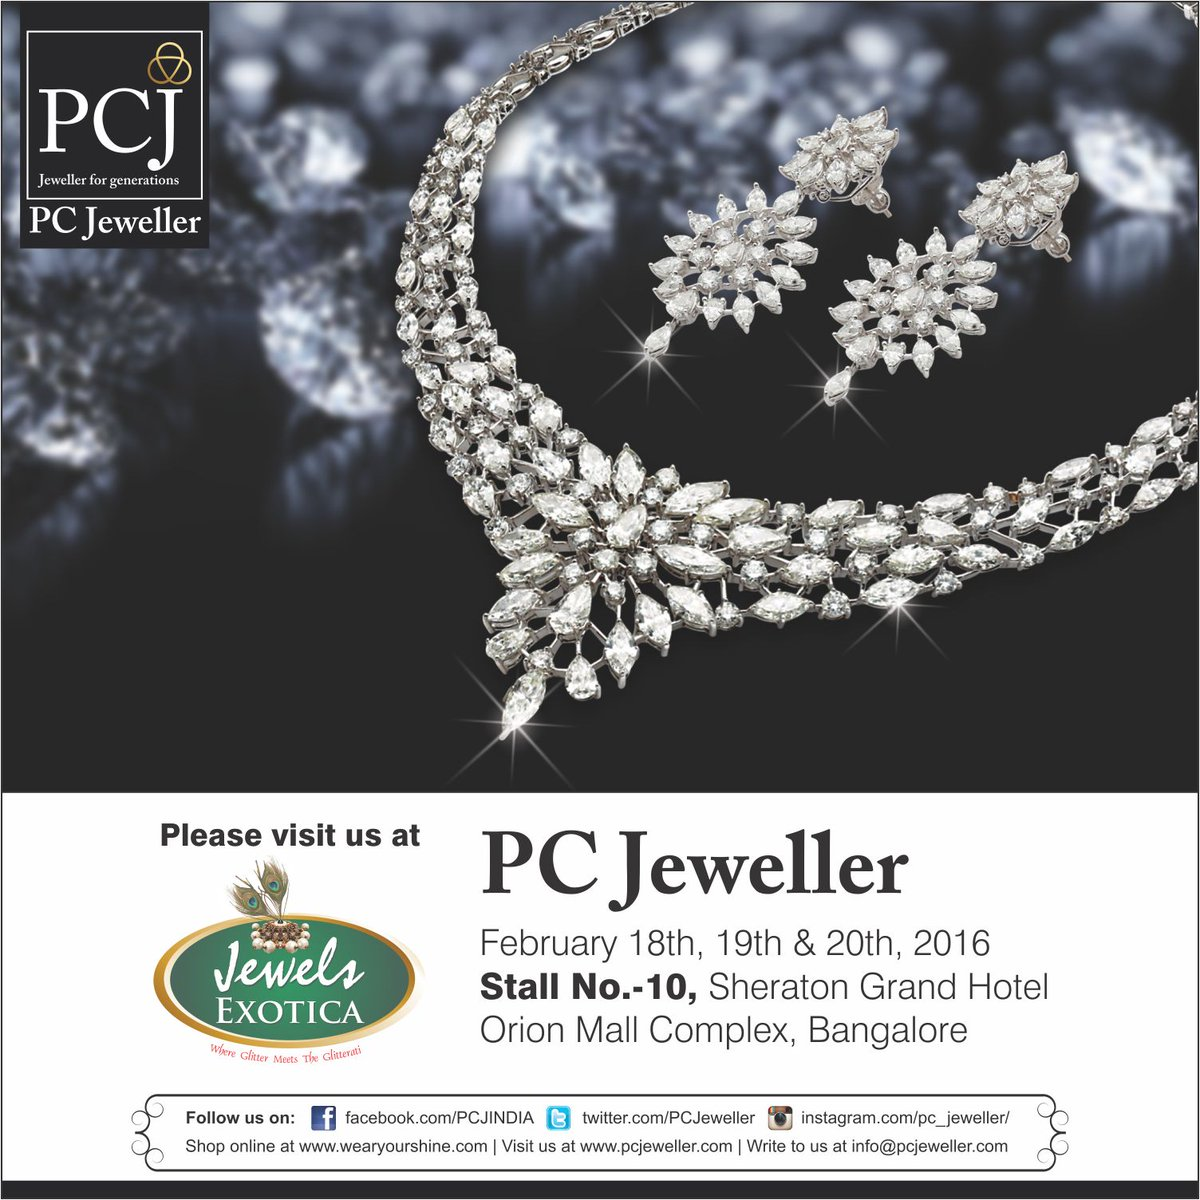 pc jeweller on twitter experience pcj s exquisite shine at jewels